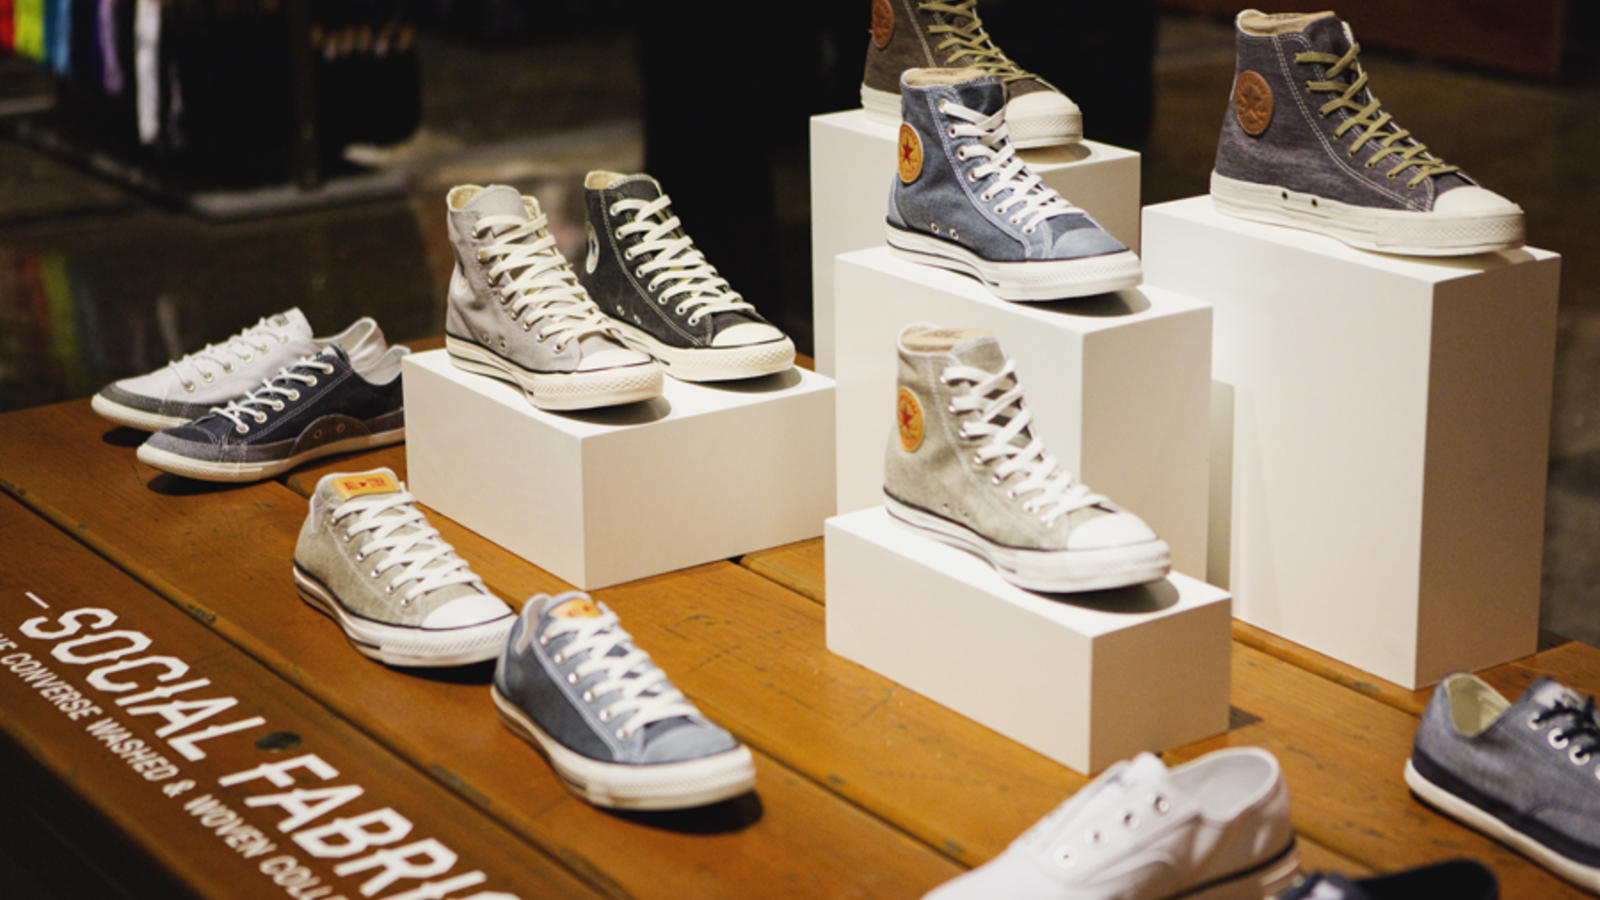 1a7beafe2208b3 Converse Opens Its First Mall-Based Retail Store In New Jersey ...